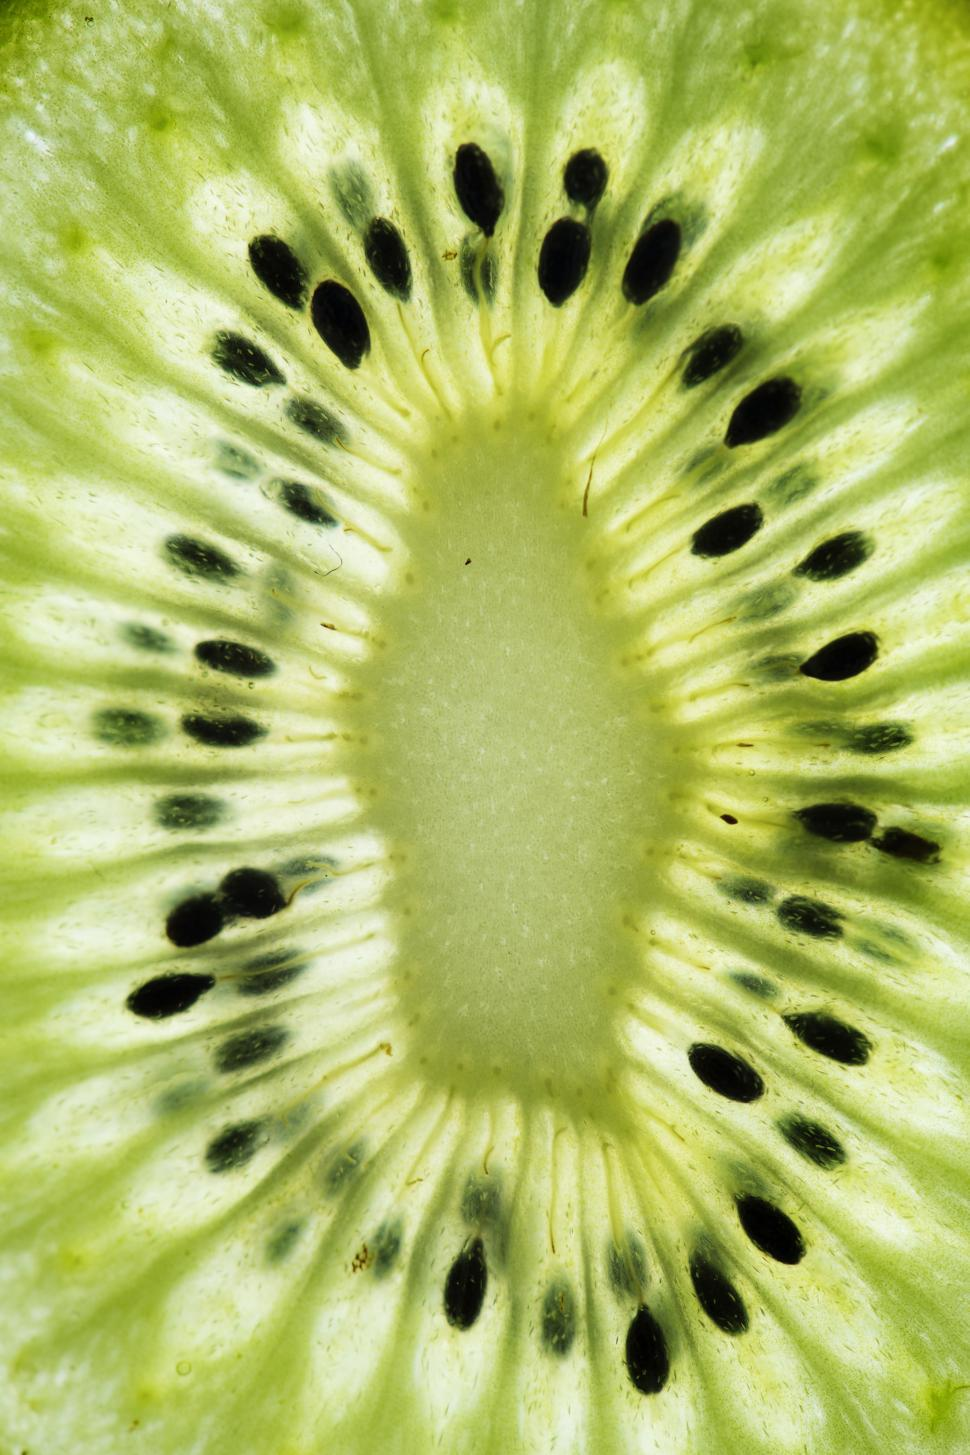 Download Free Stock HD Photo of Close up of a kiwi slice Online